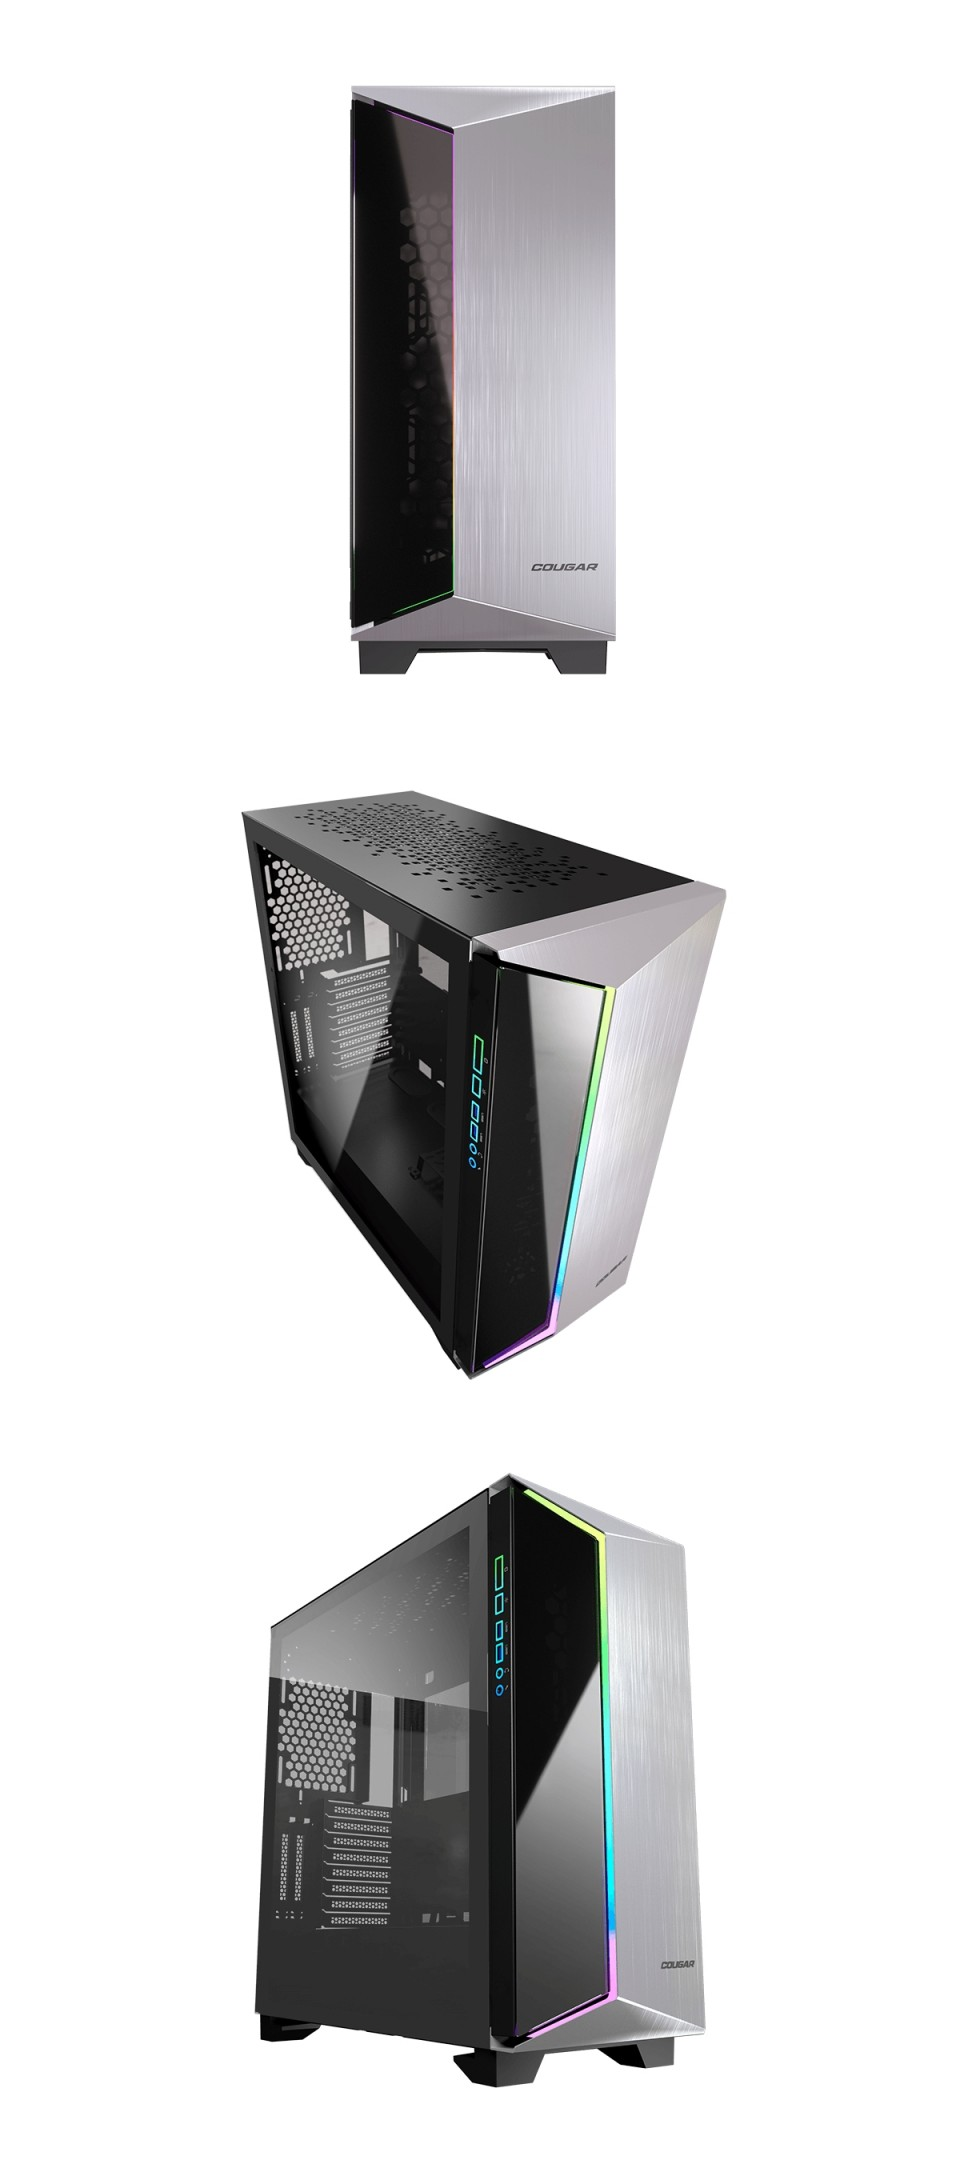 Cougar DarkBlader G RGB TG Full Tower Case Black product